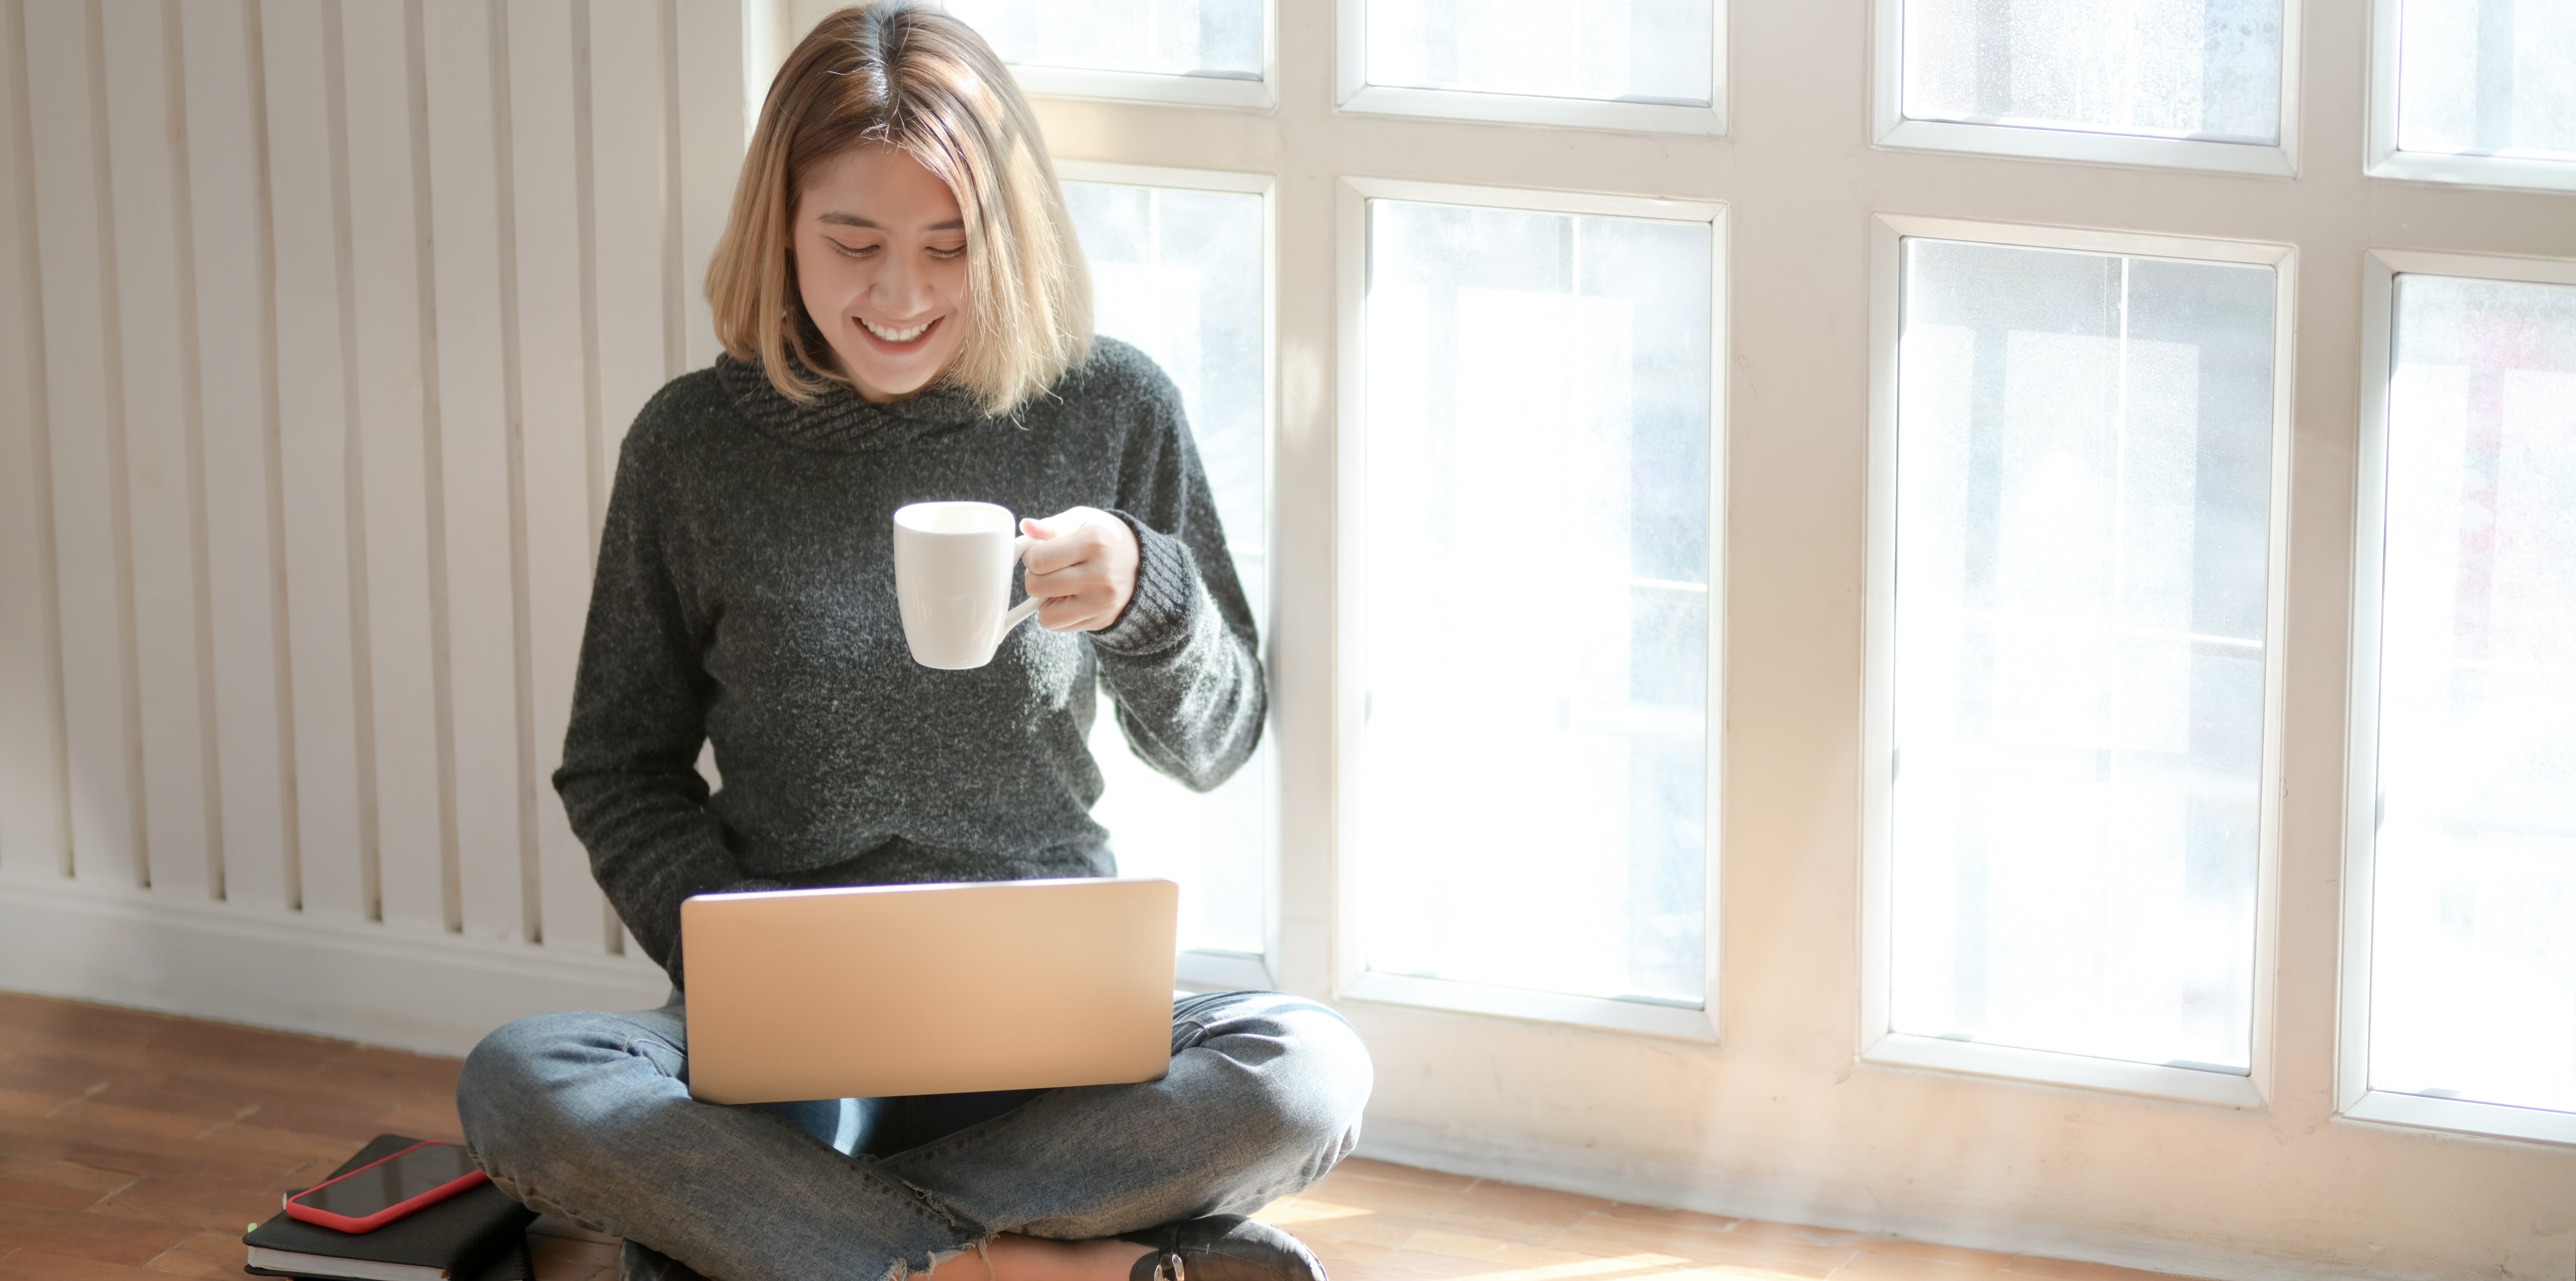 Woman videochatting on laptop holding coffee cup